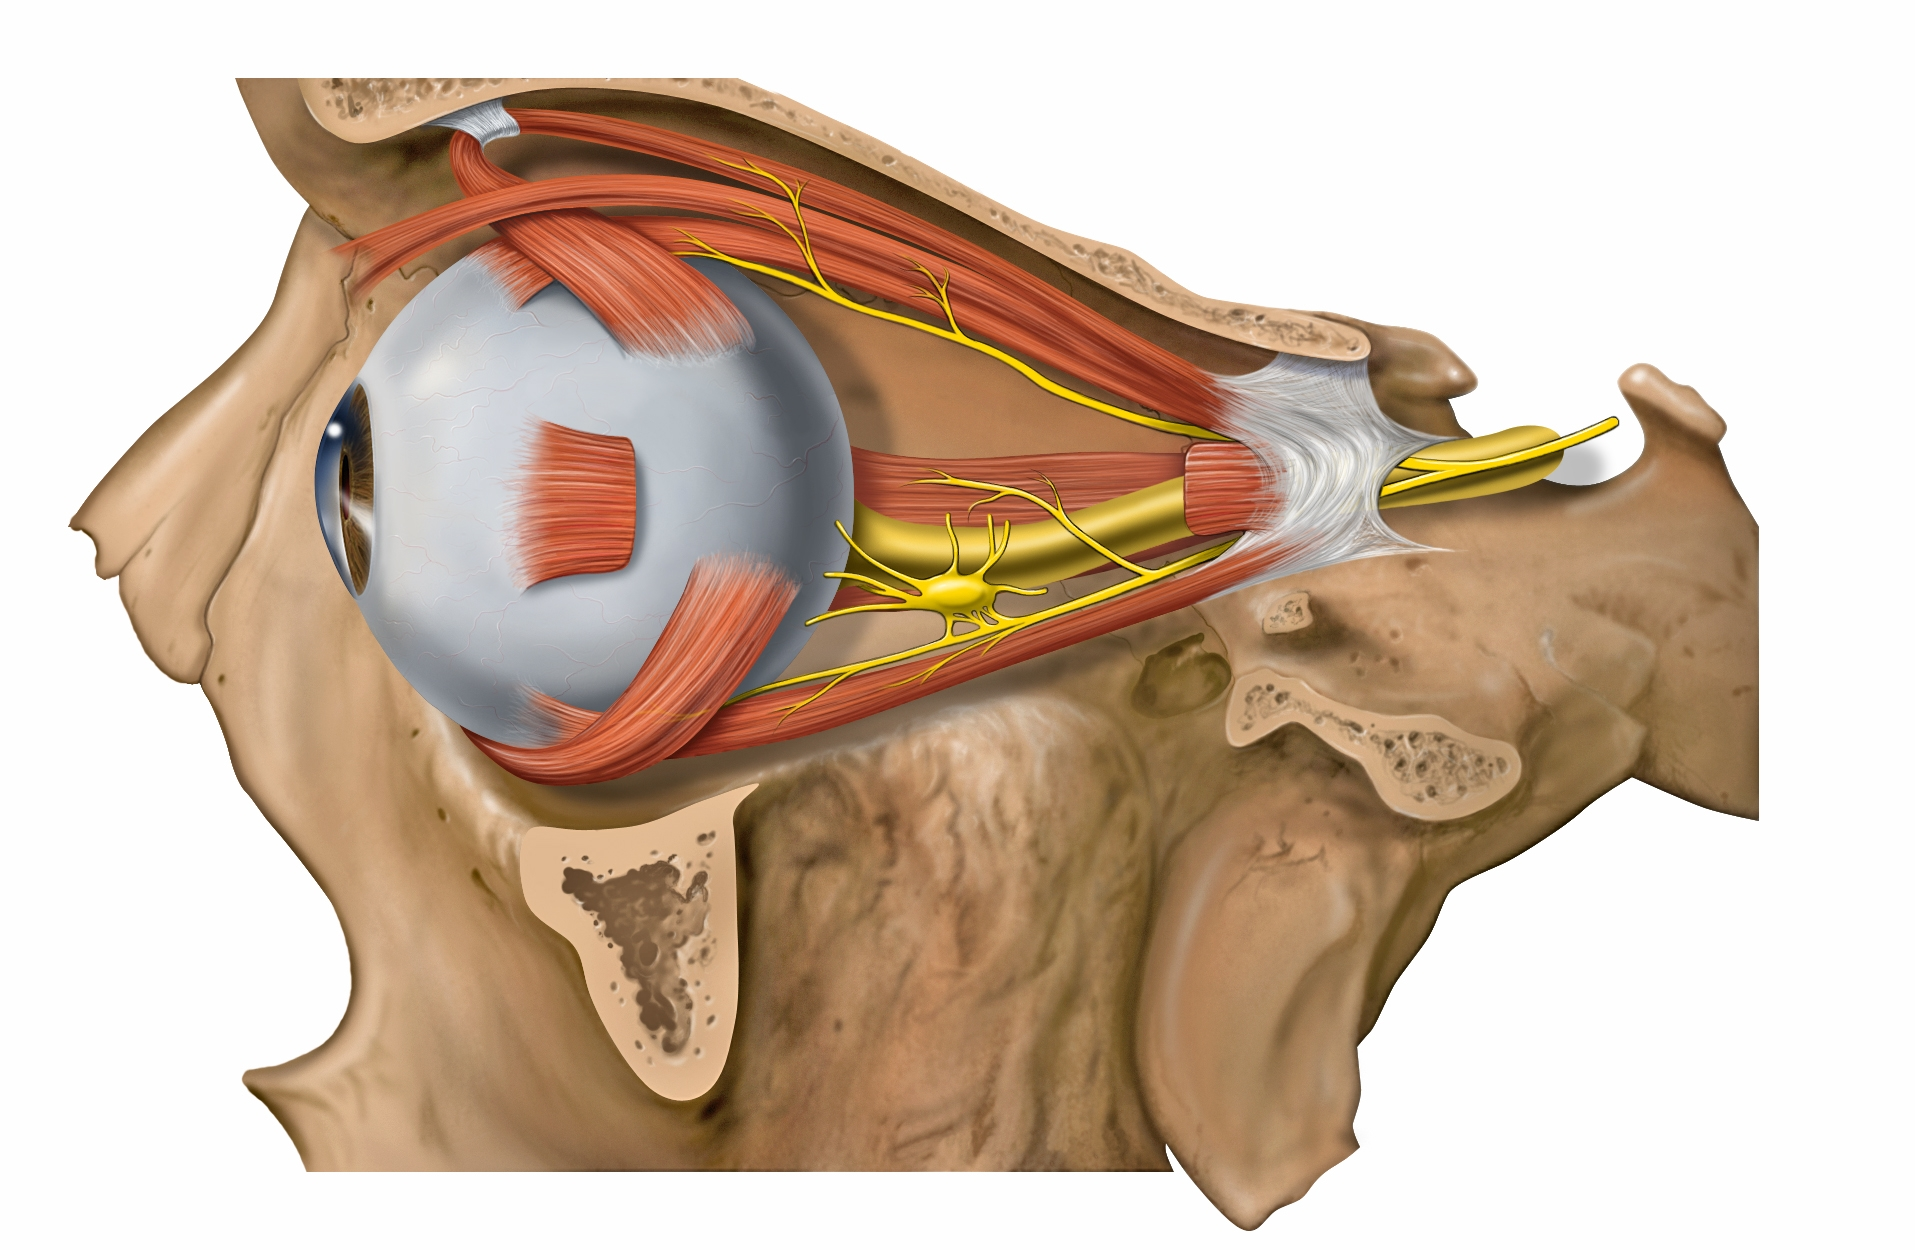 Lateral orbit with extraocular muscles and nerves.